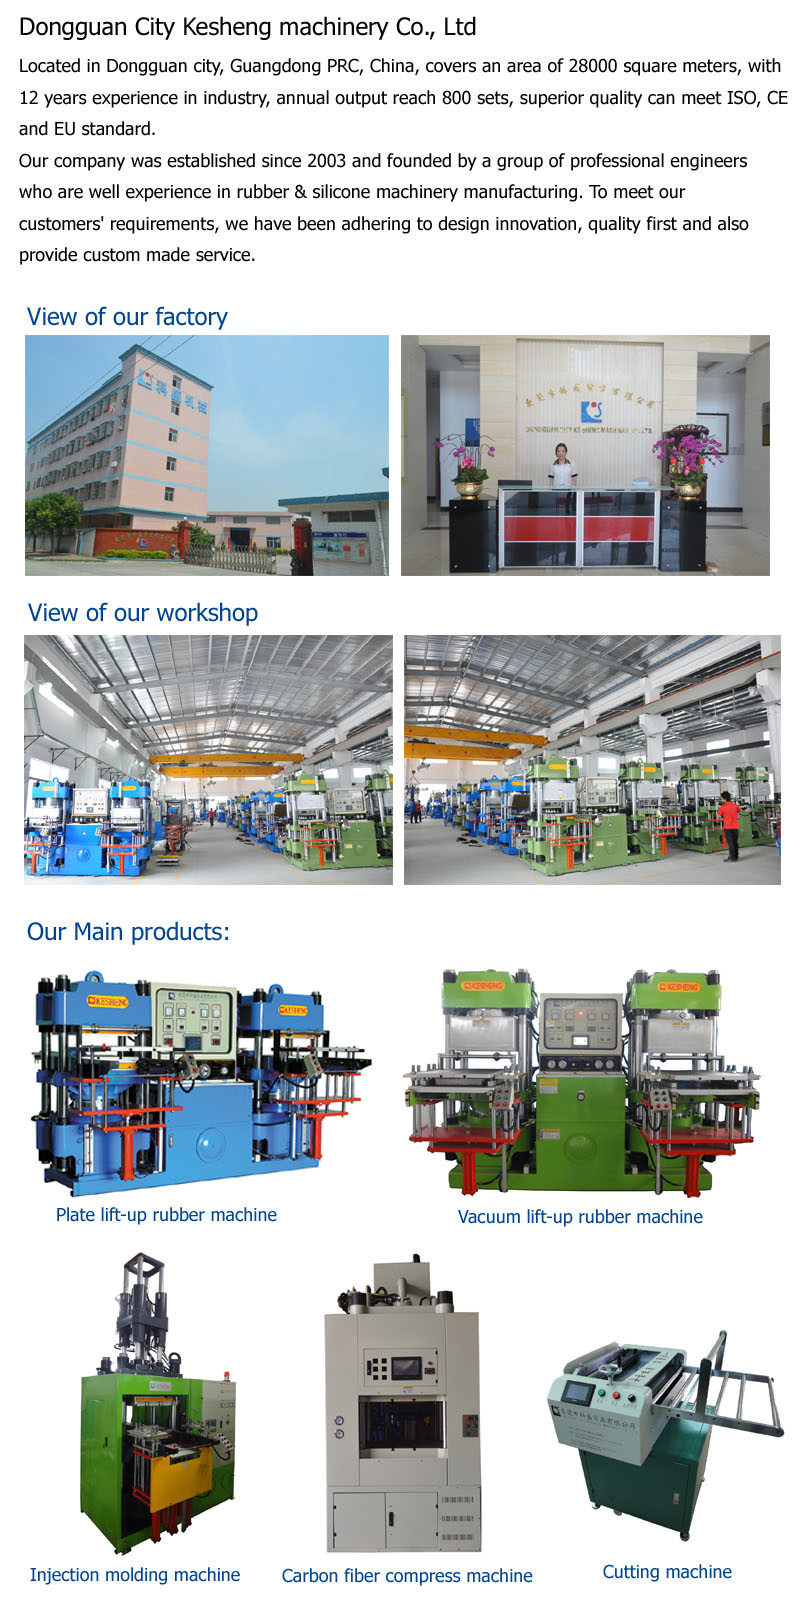 Hydraulic Press Machine for Rubber Wrist Band O-Ring Products (KS200HF)